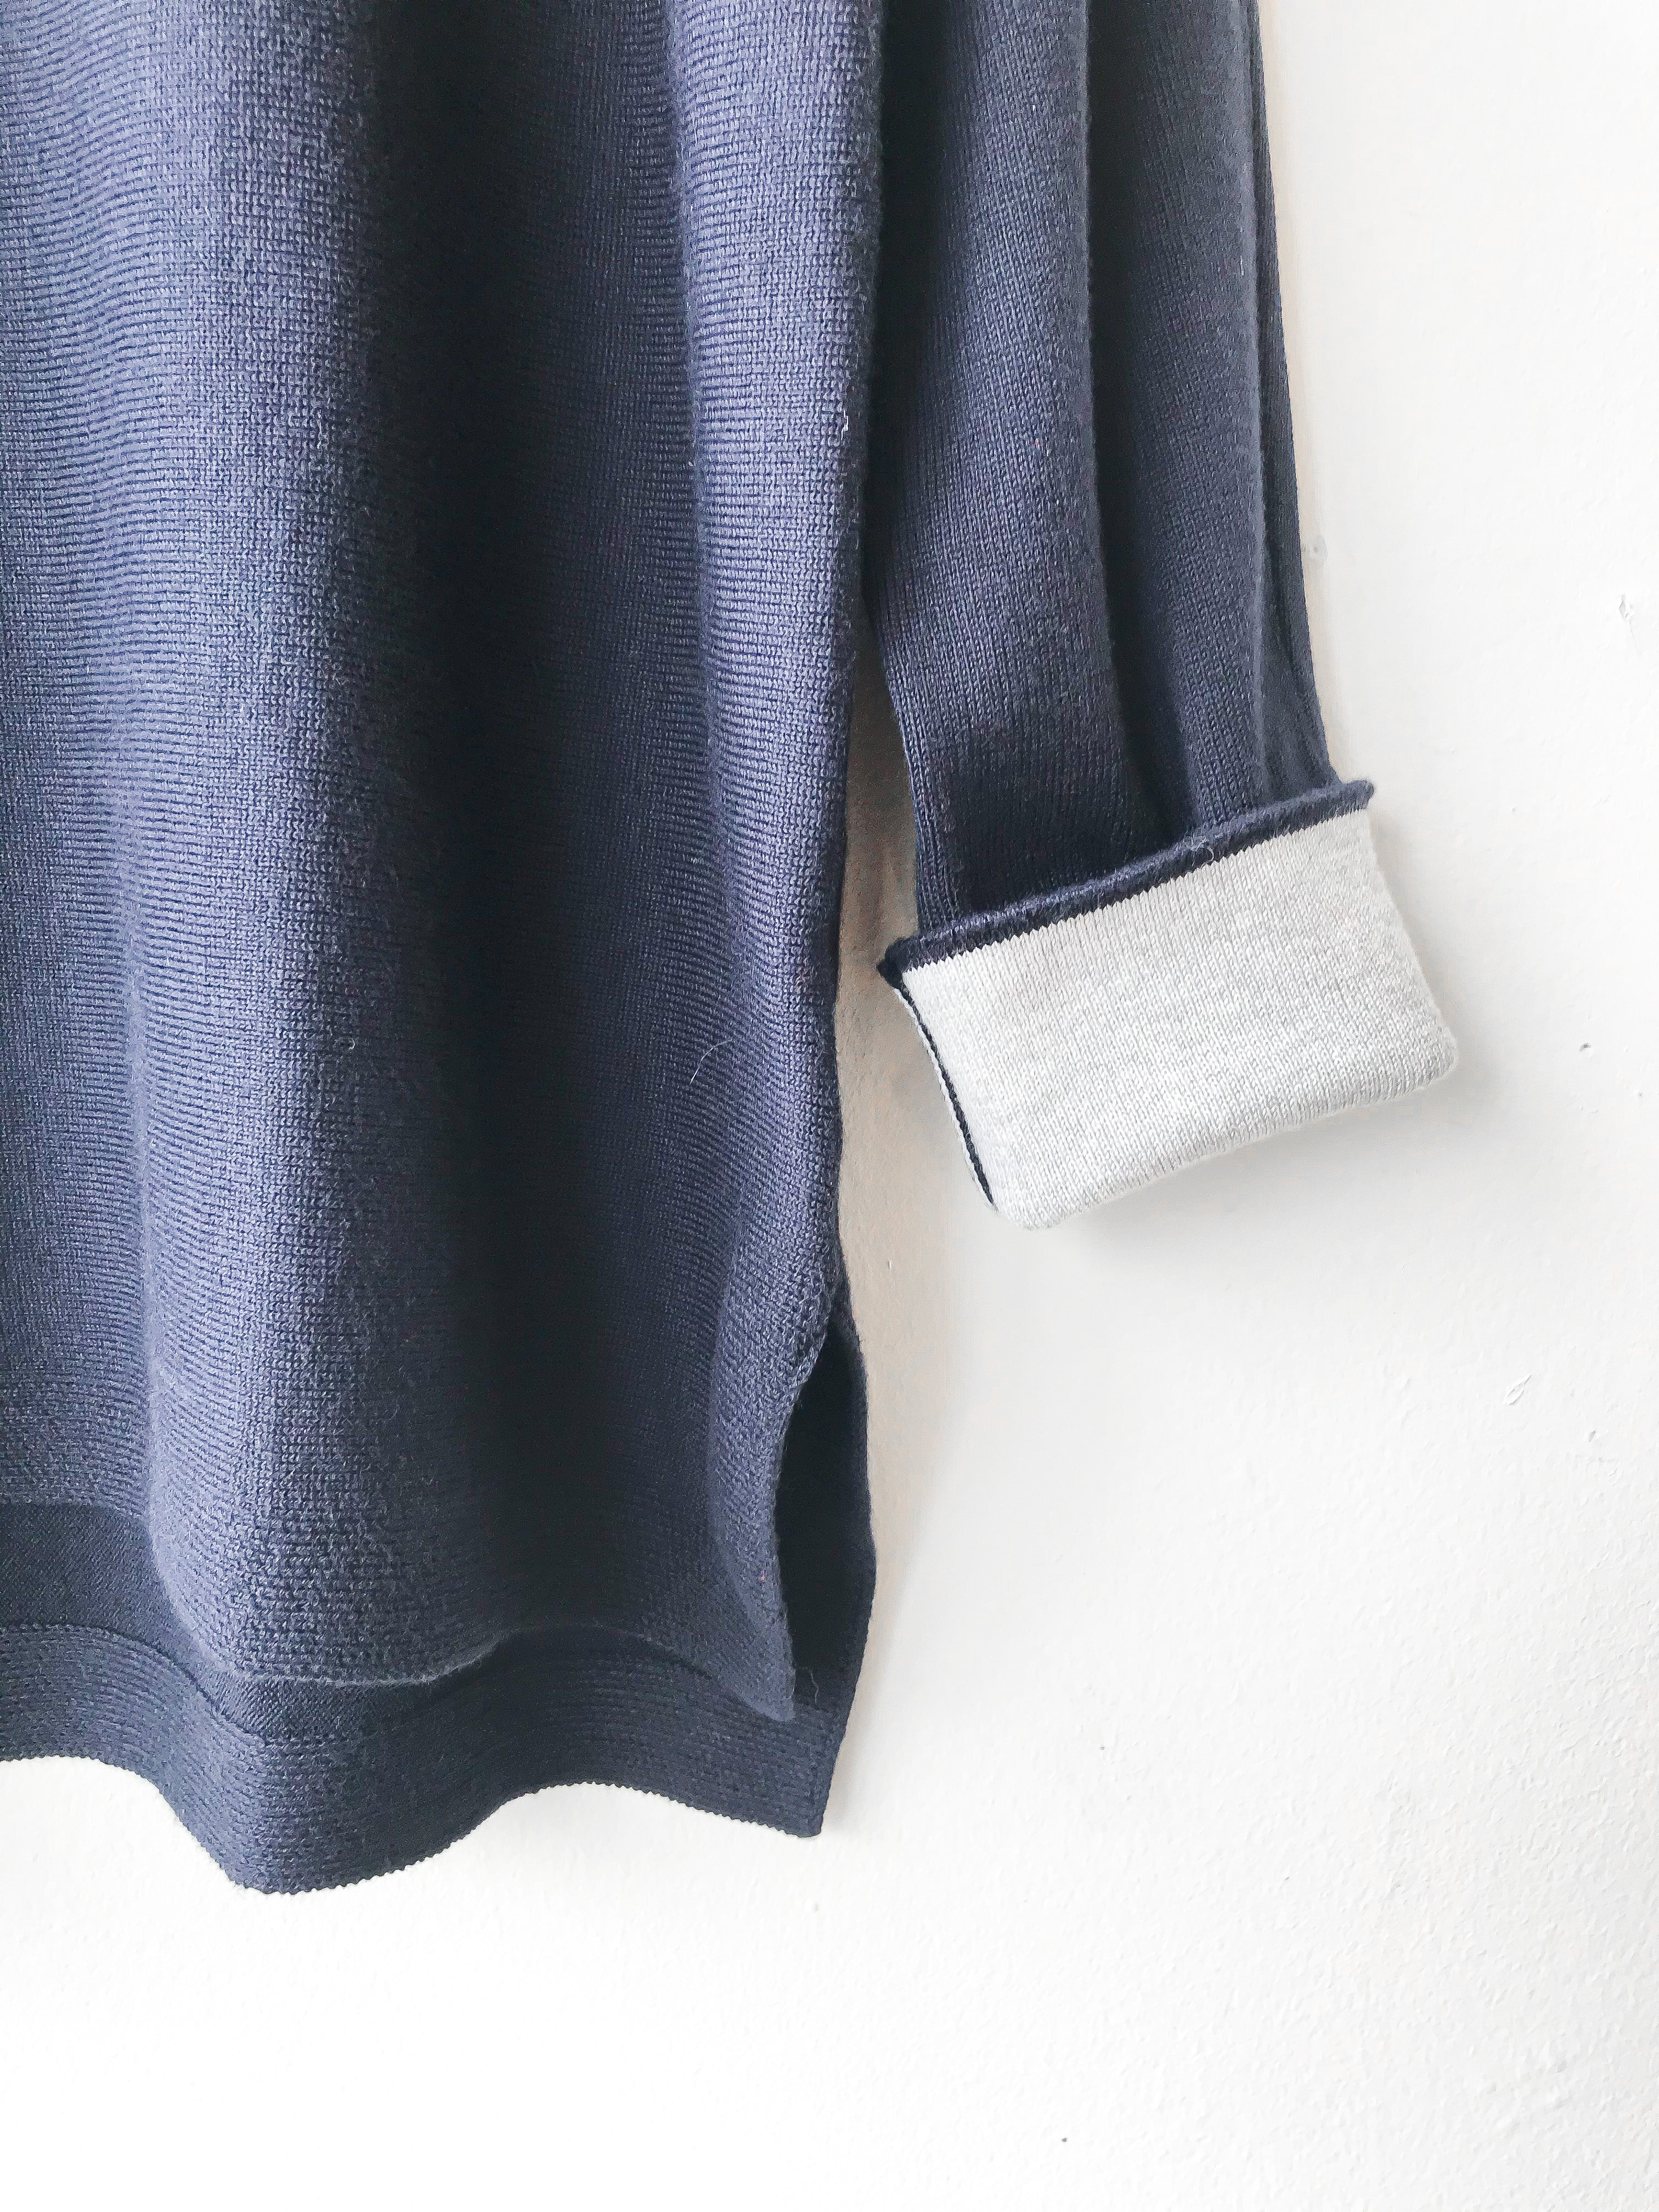 WHITE STUFF | Masterful Jumper - NAVY